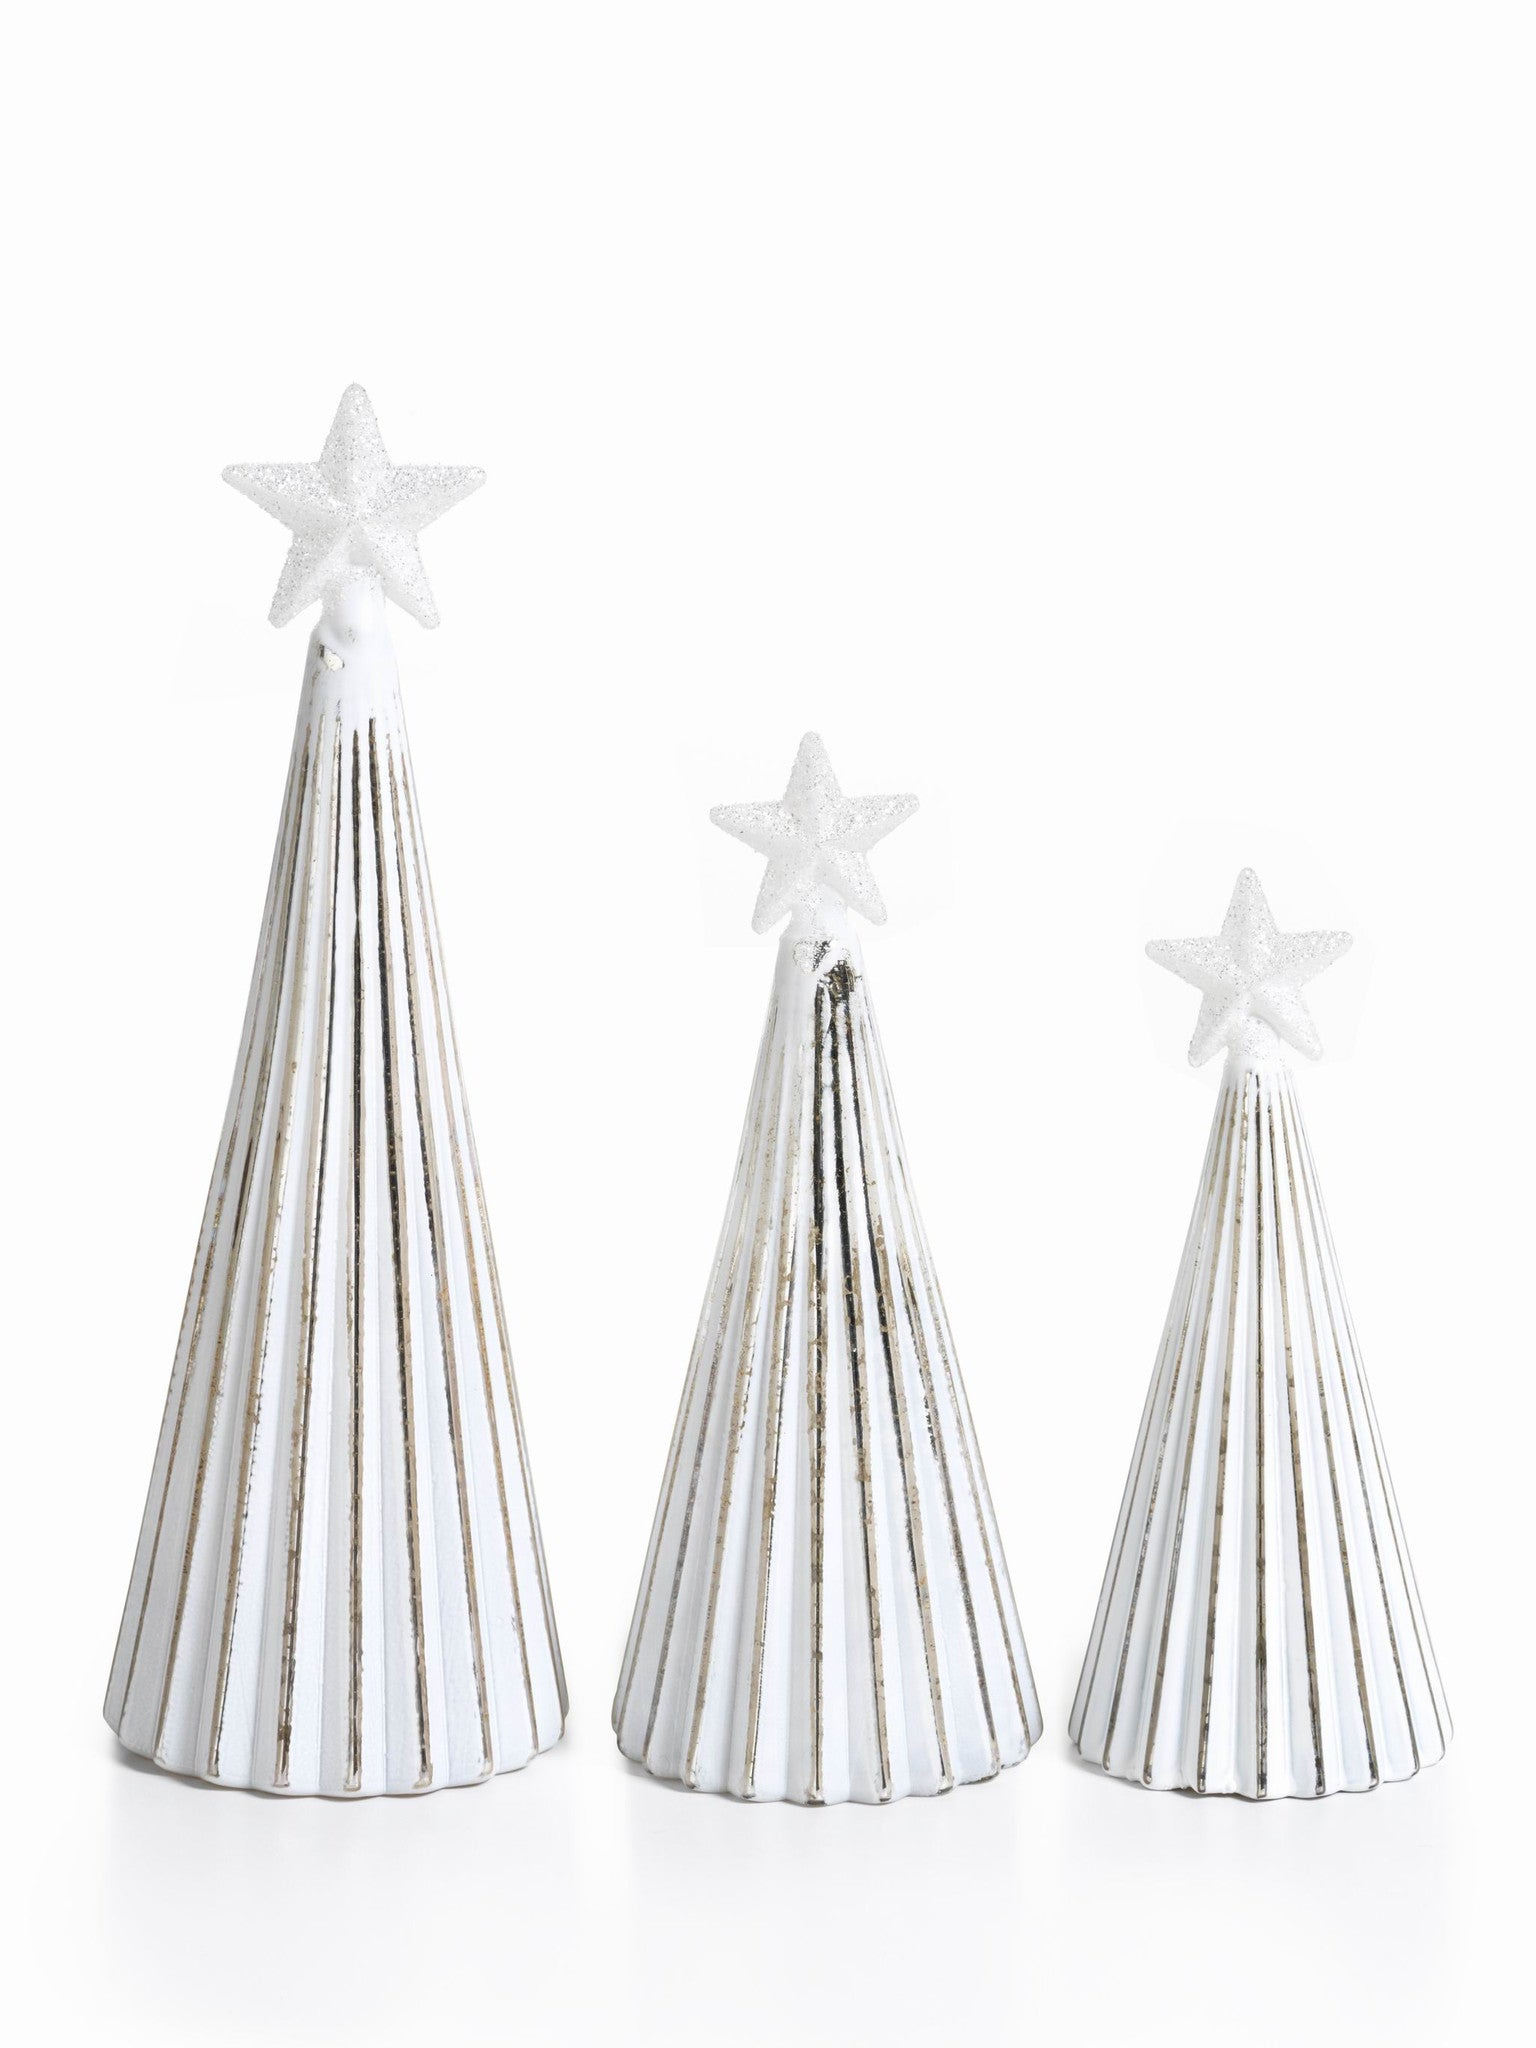 LED Glass Decorative Tree - Silver - Set of 6 -  - CARLYLE AVENUE - 10